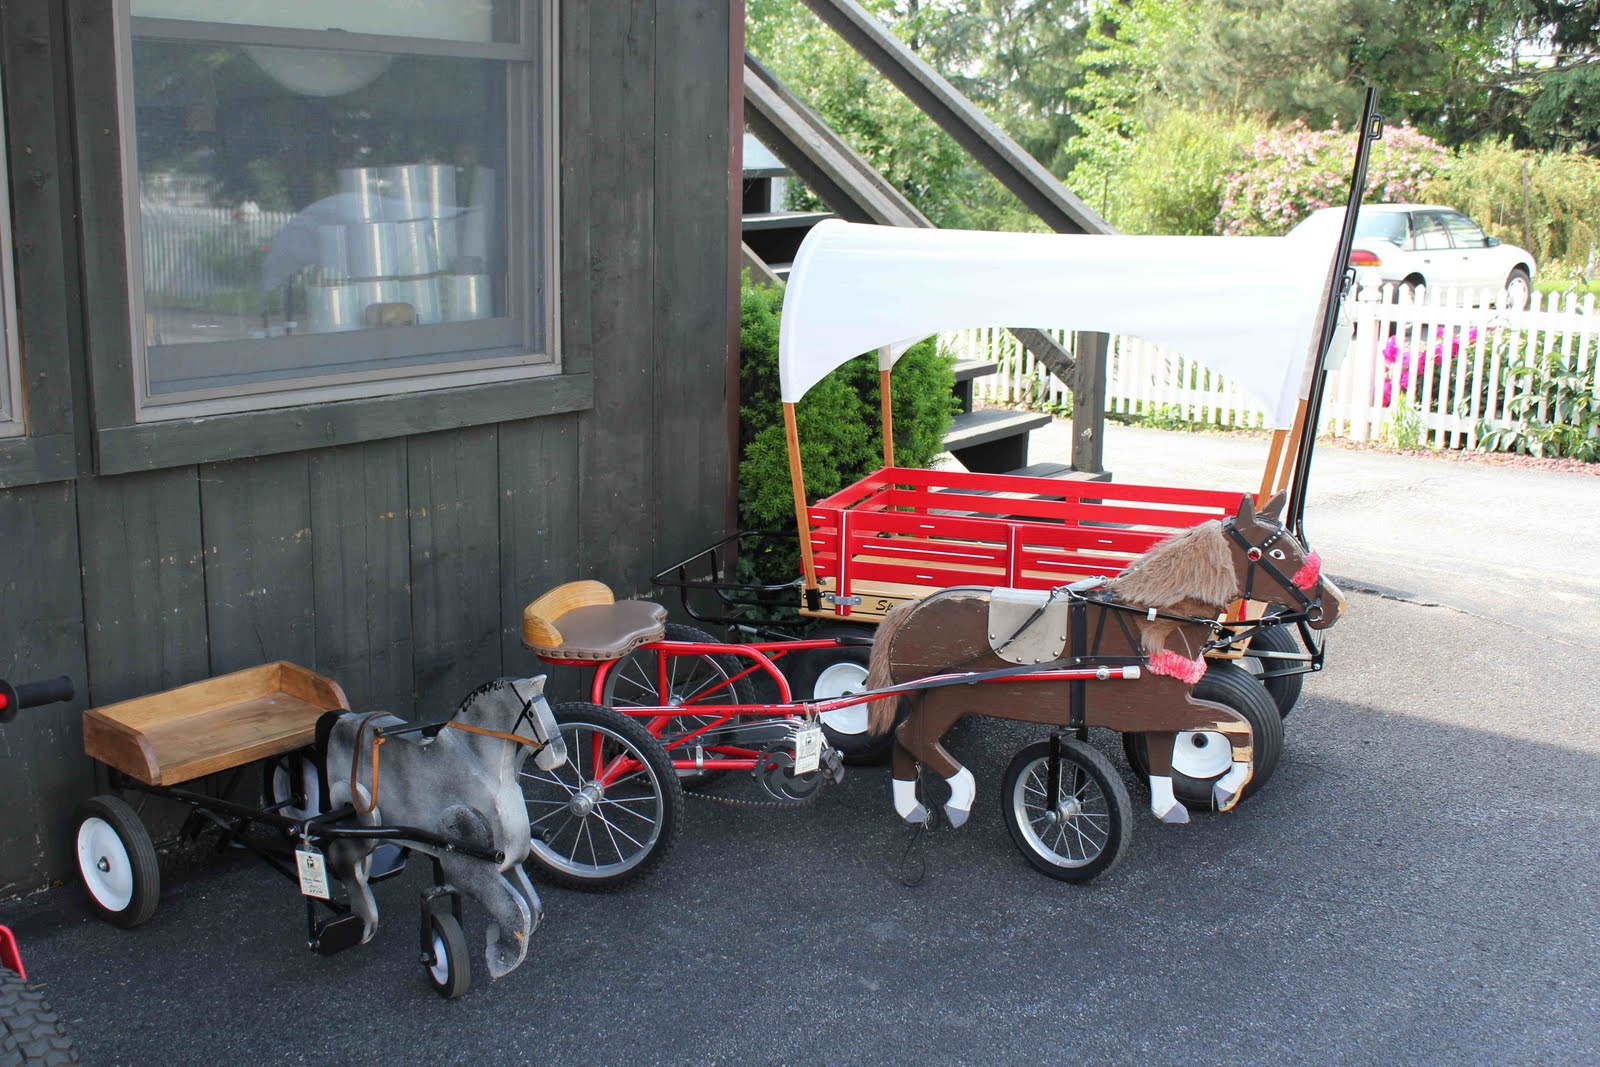 a couple of amish folk in